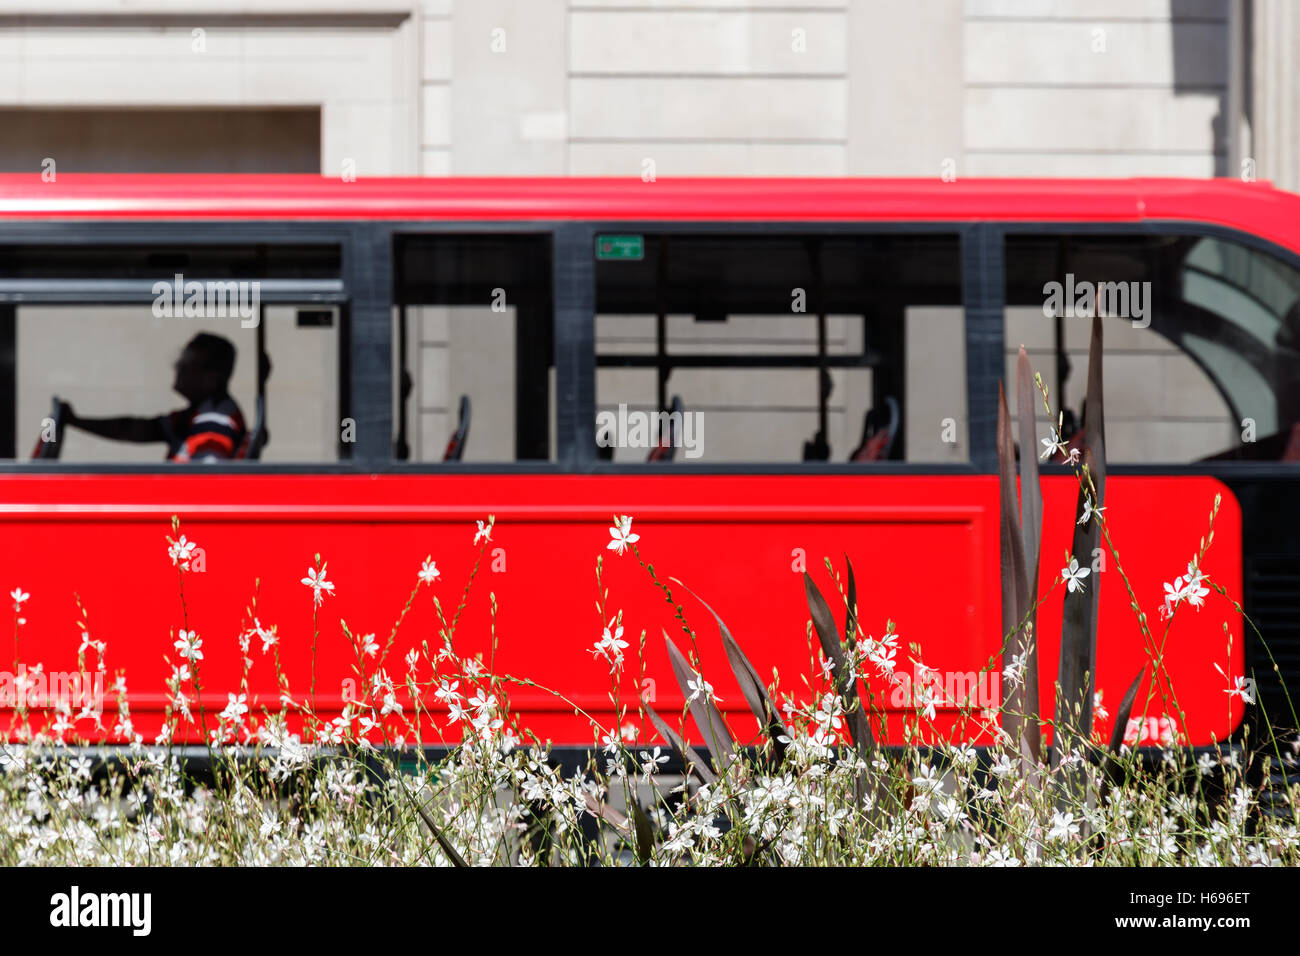 White flowers with a red double decker bus blurred in the background for concept use - Stock Image